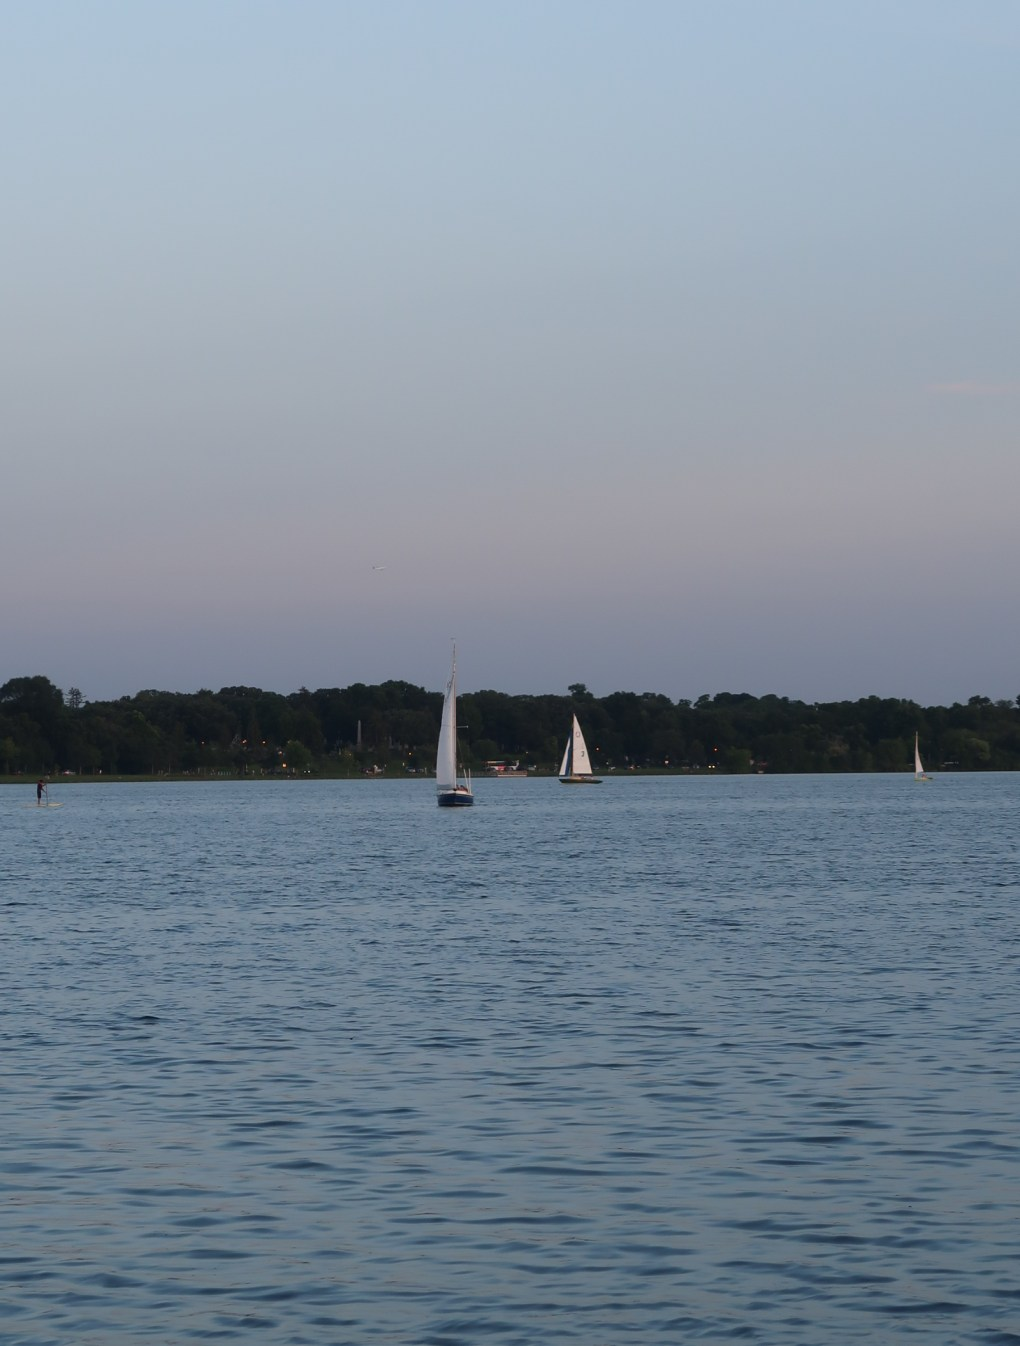 sunset on lake with sailboats in the distance